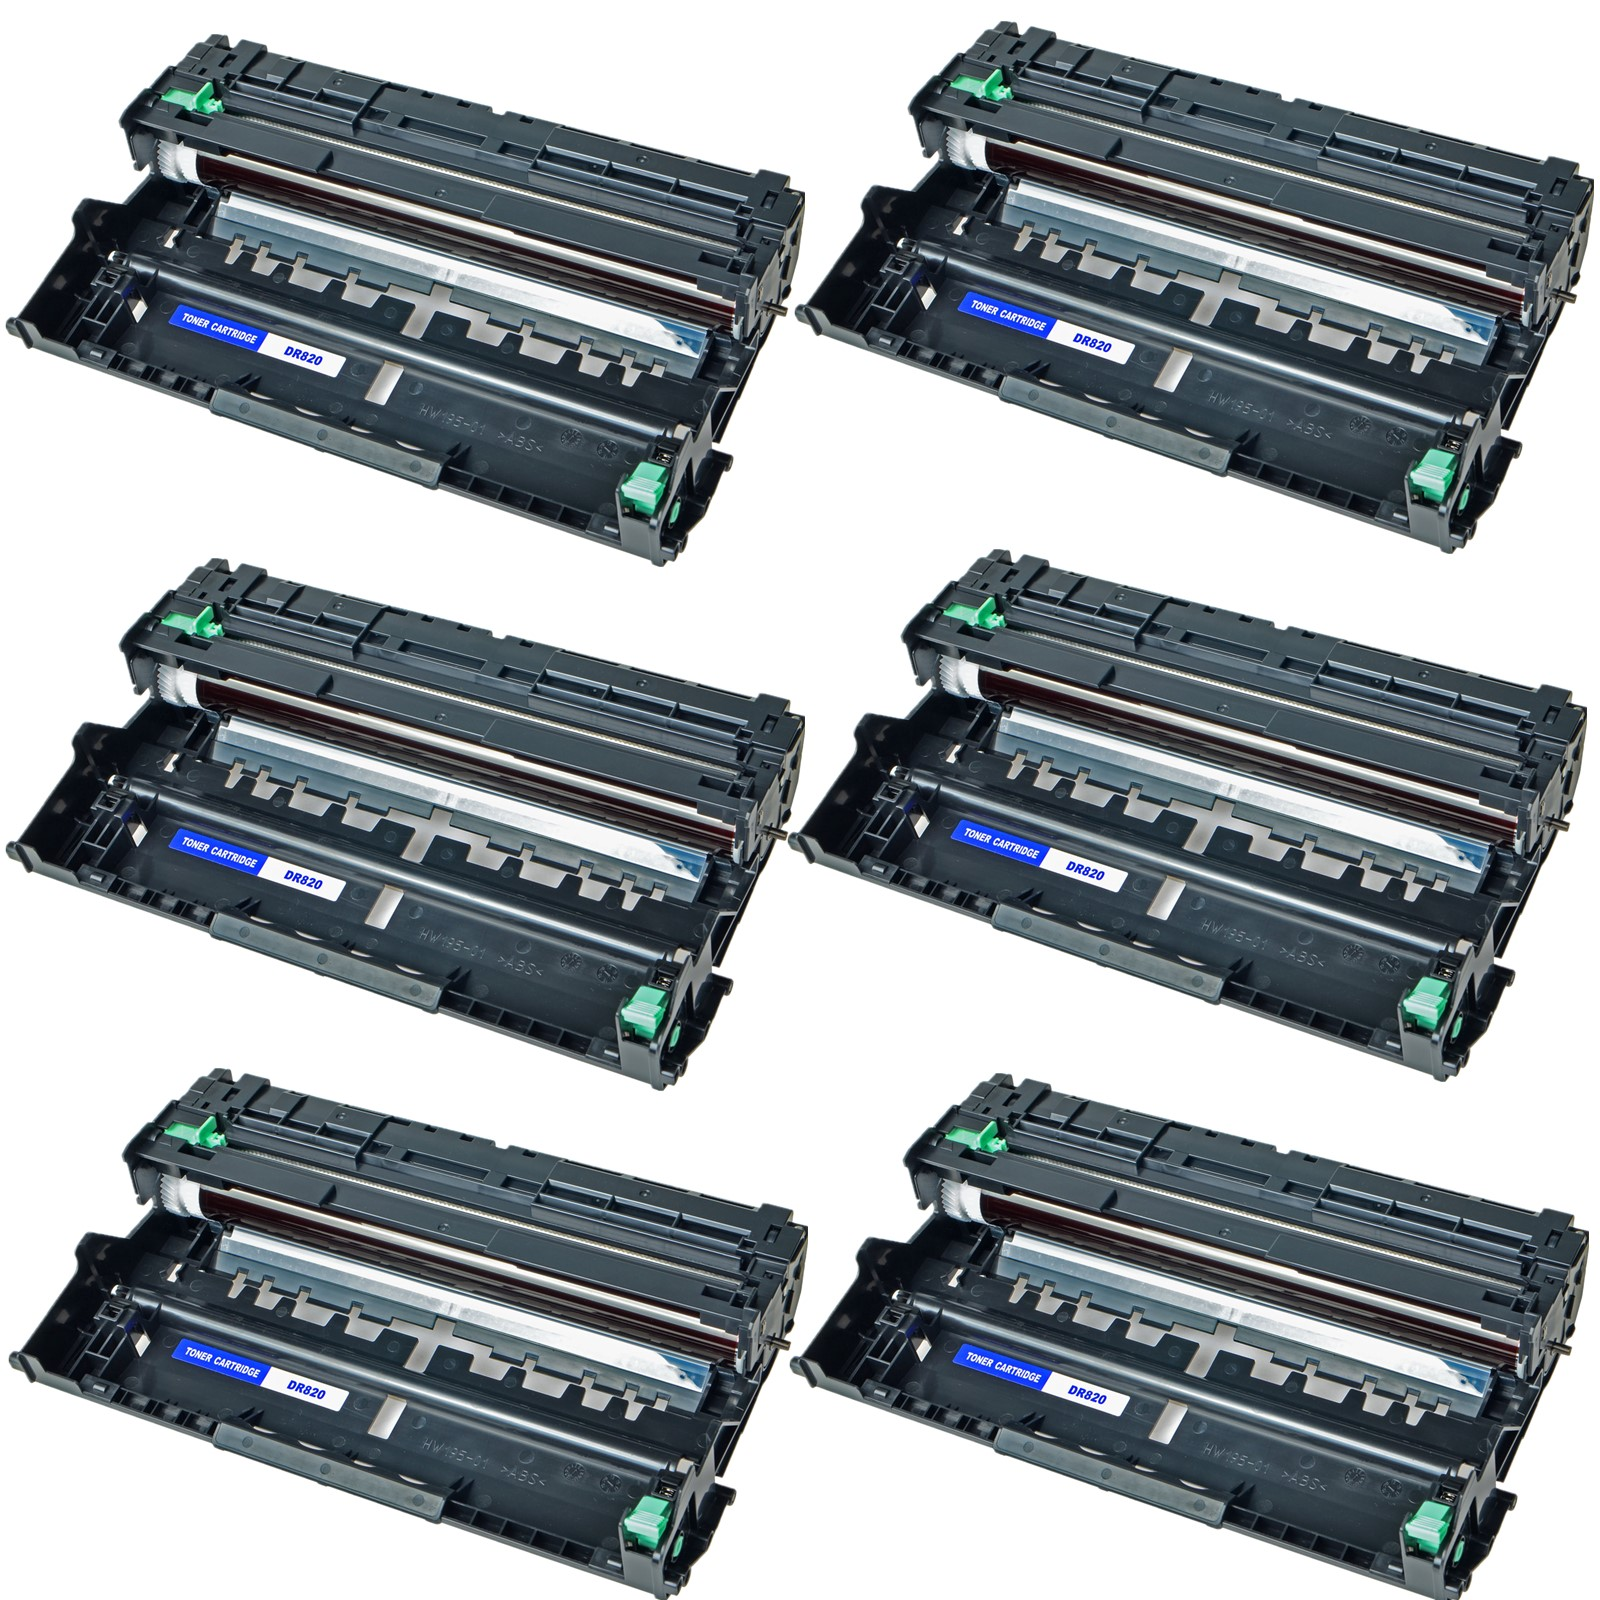 6PK DR820 Drum Unit for the Brother MFC-L5900DW L6700DW L6750DW L6900DW L6800DW